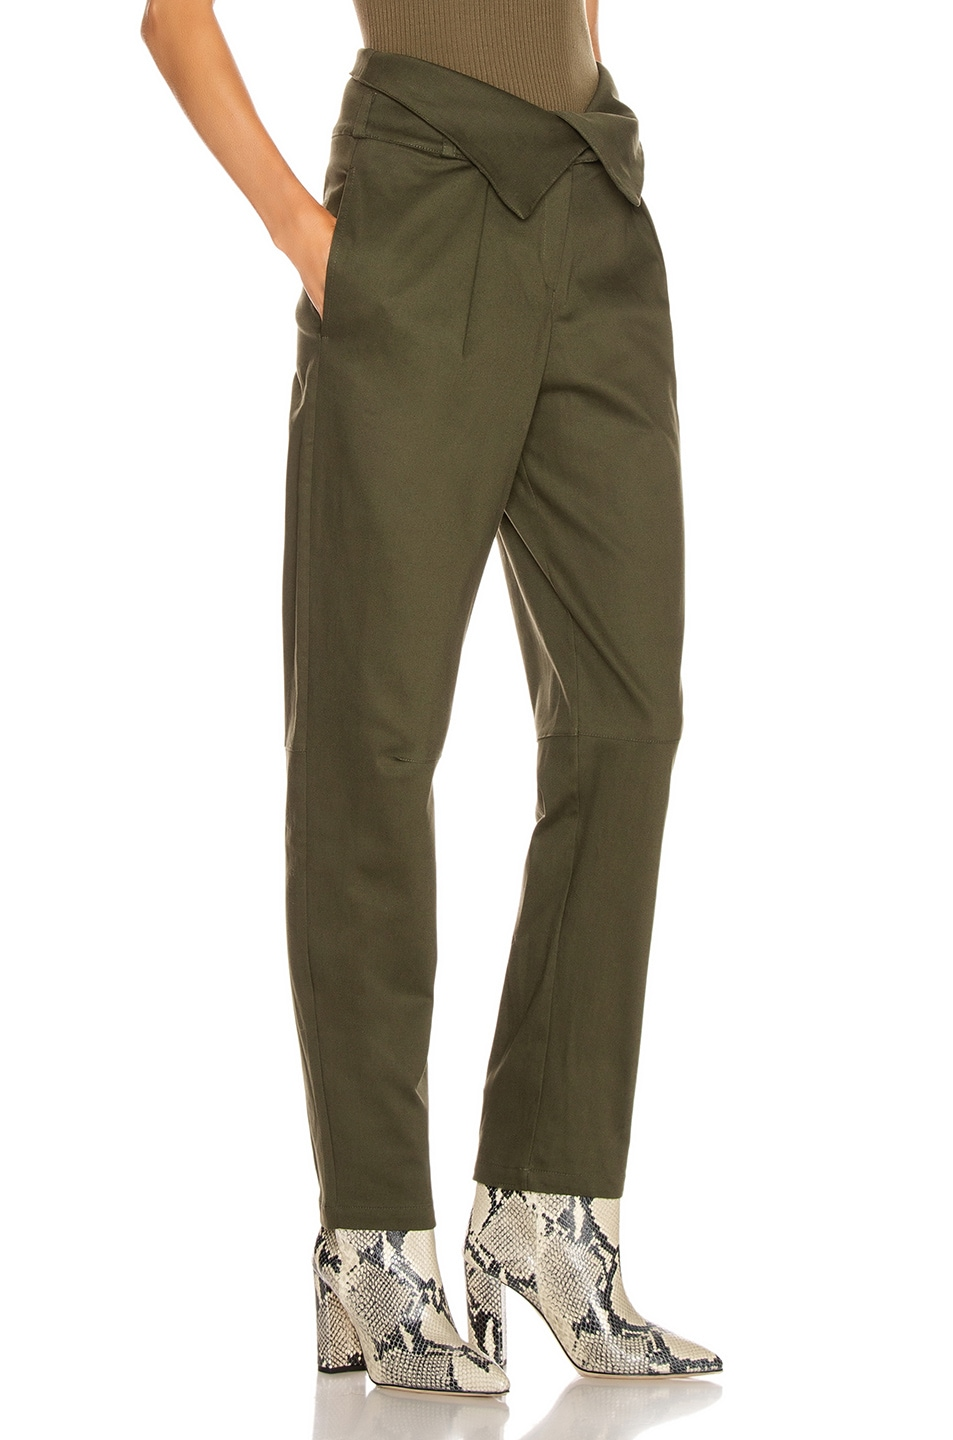 Image 2 of The Range Petite Corduroy Fold Over Pant in Deep Woods